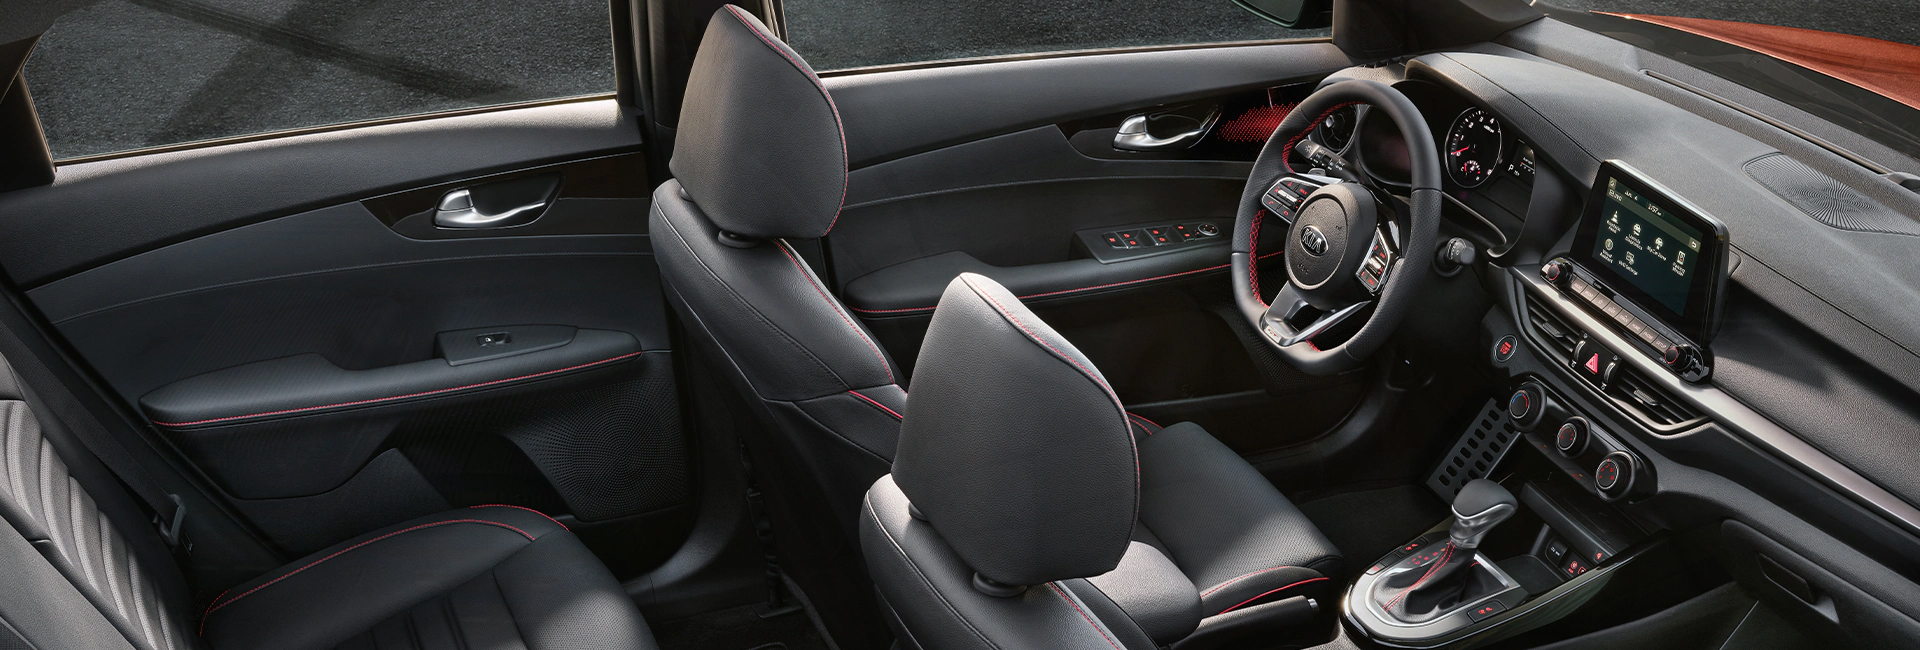 Interior image of the 2020 Kia Forte